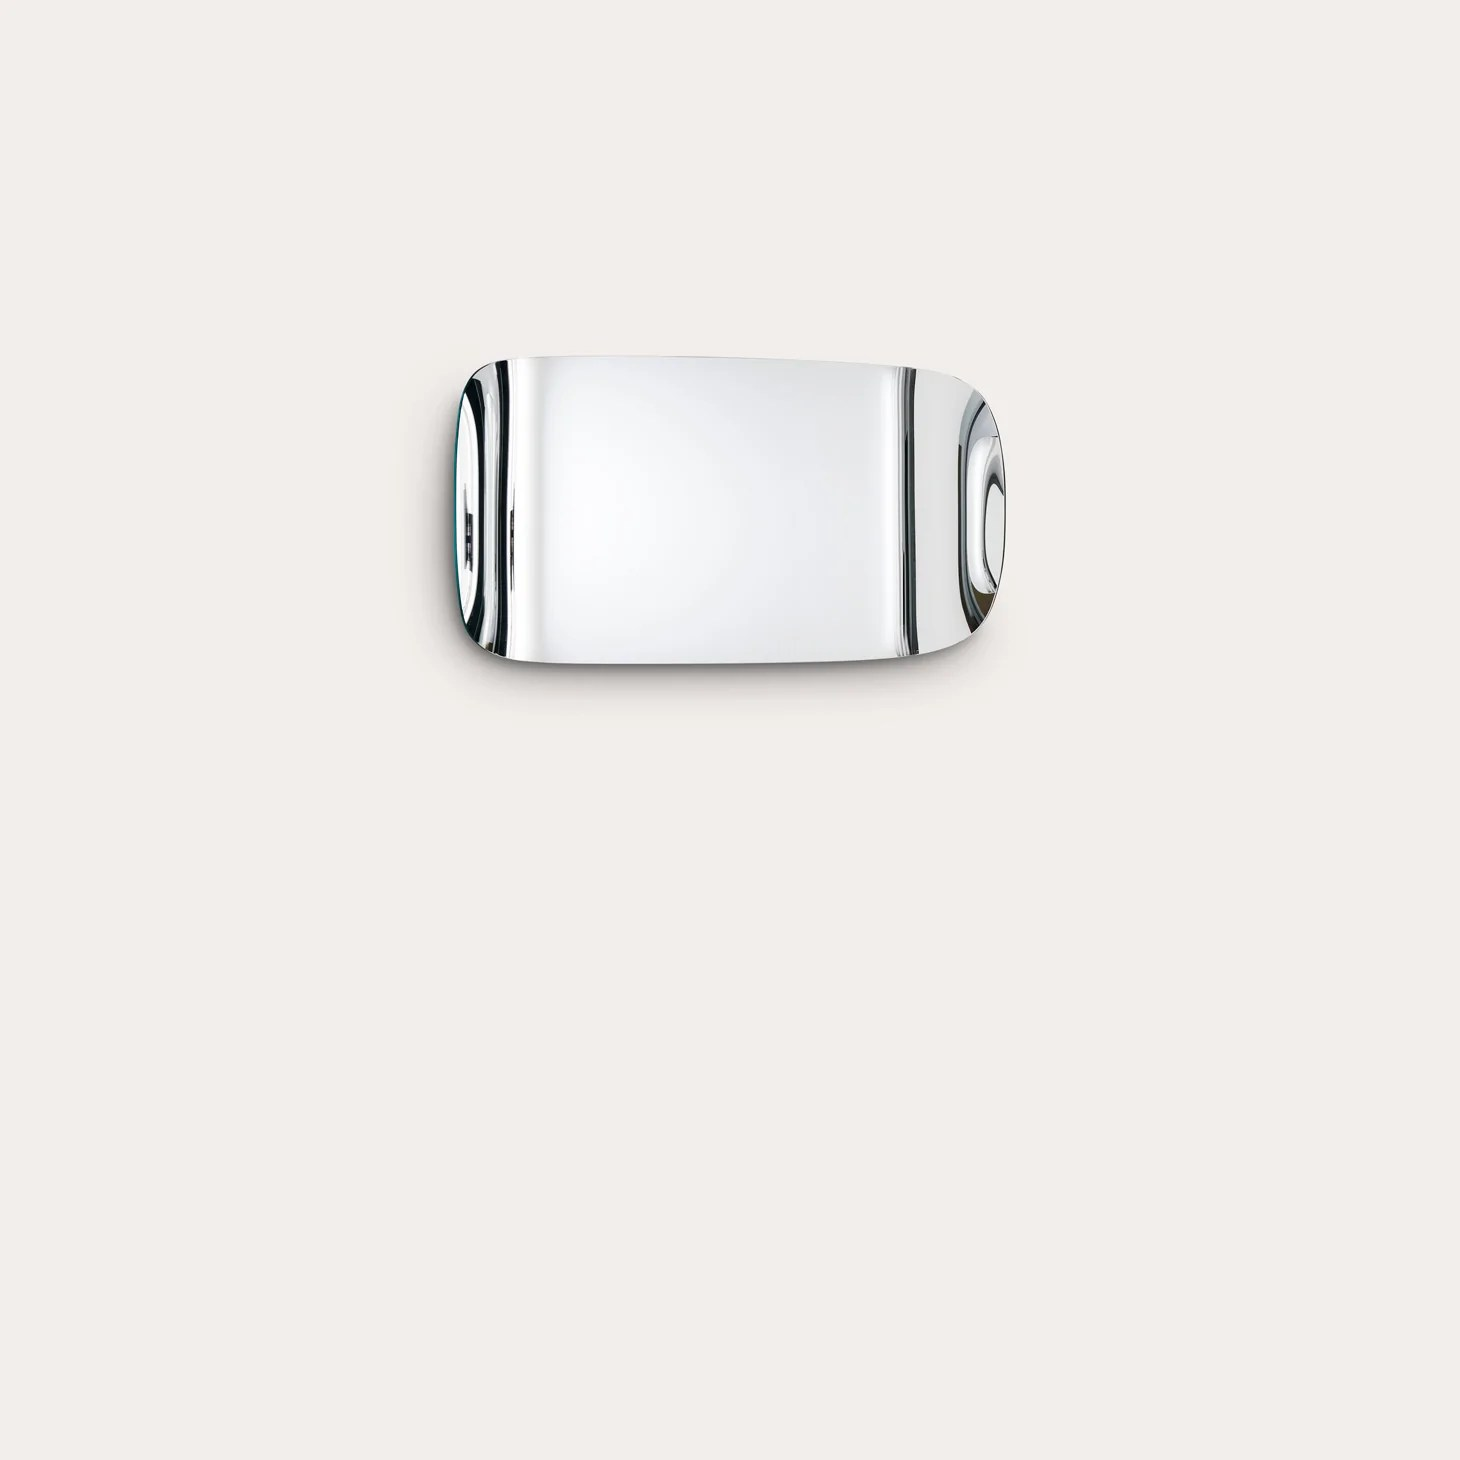 Marlene Mirror Mirrors By Philippe Starck Avenue Road Avenue Road Usa